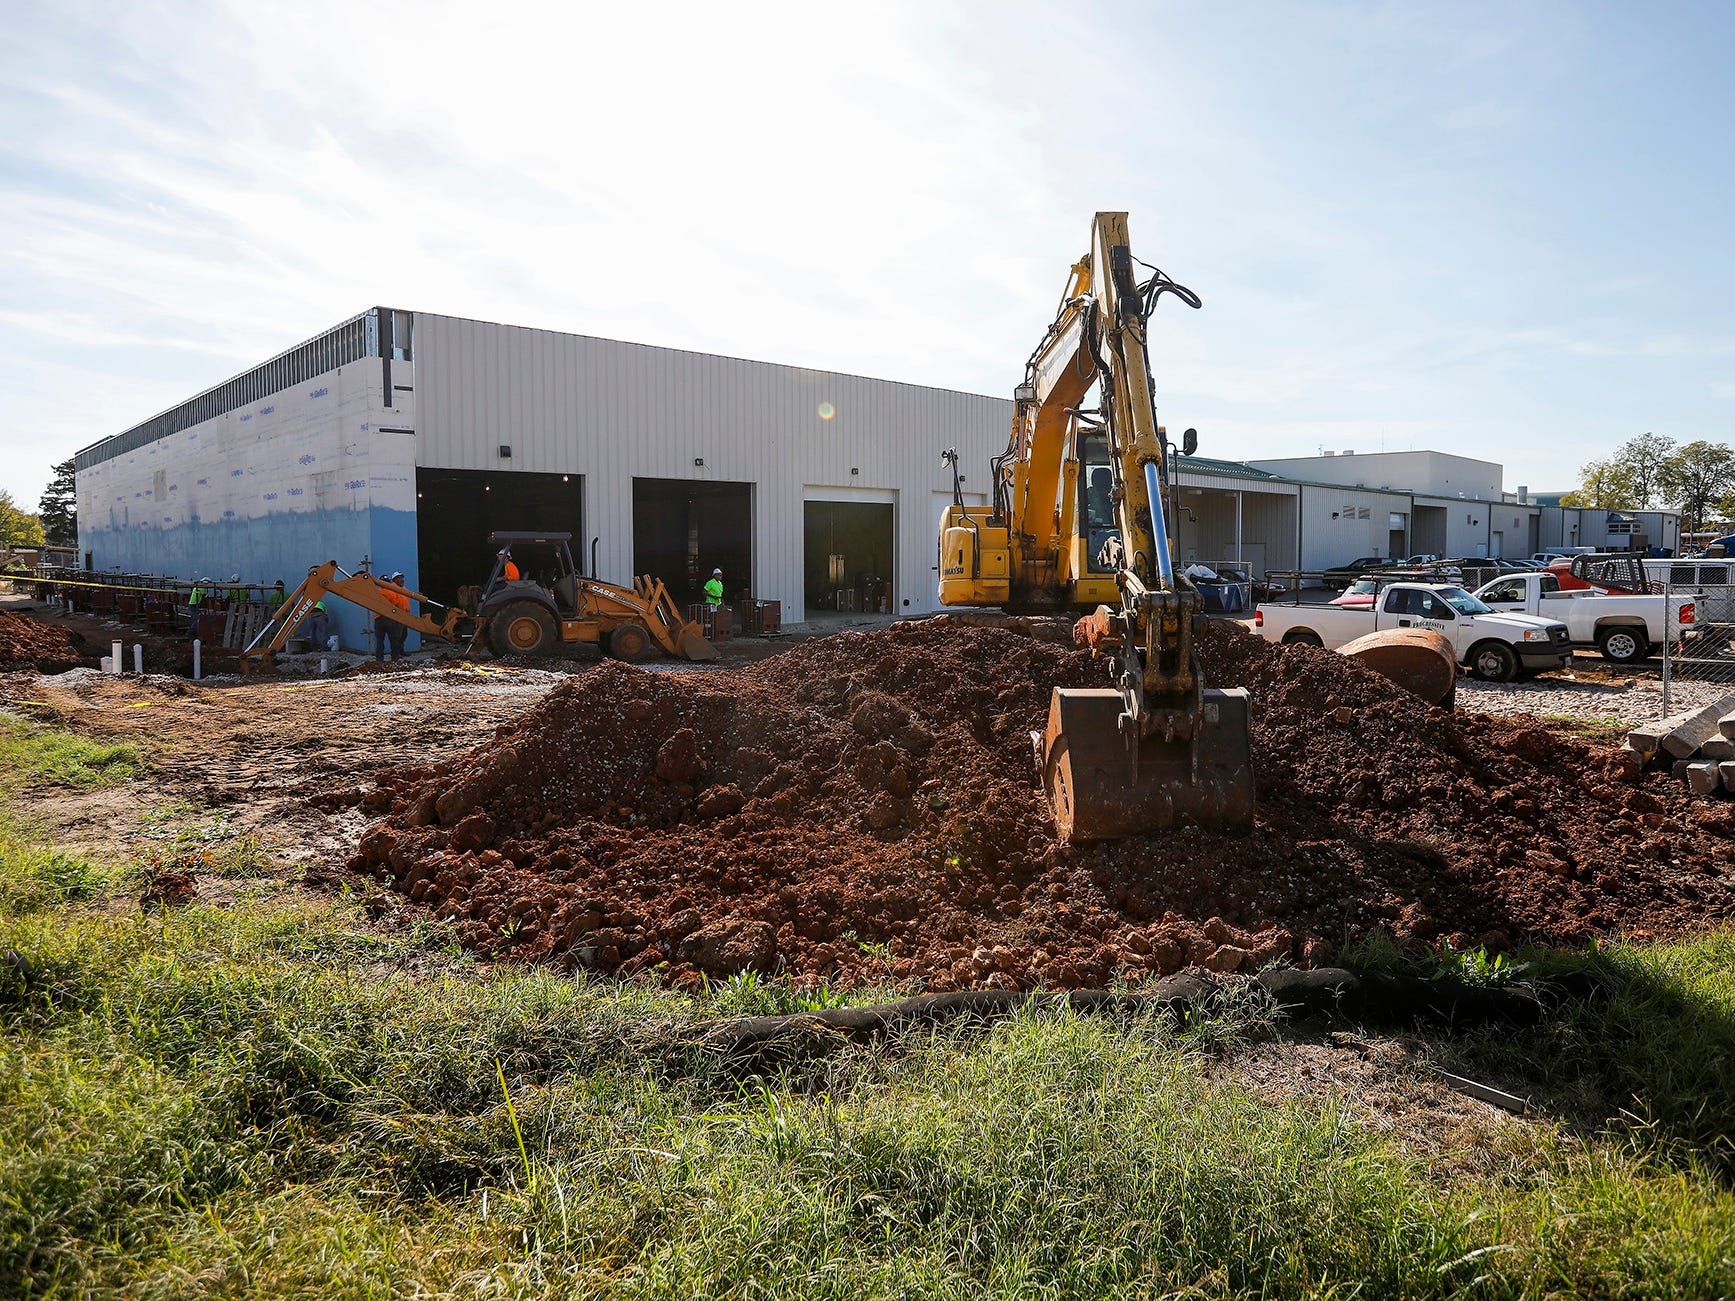 The MHC Diesel Training Center at OTC will open in January. The 12,500-square-feet addition is expected to cost $2.2 million.